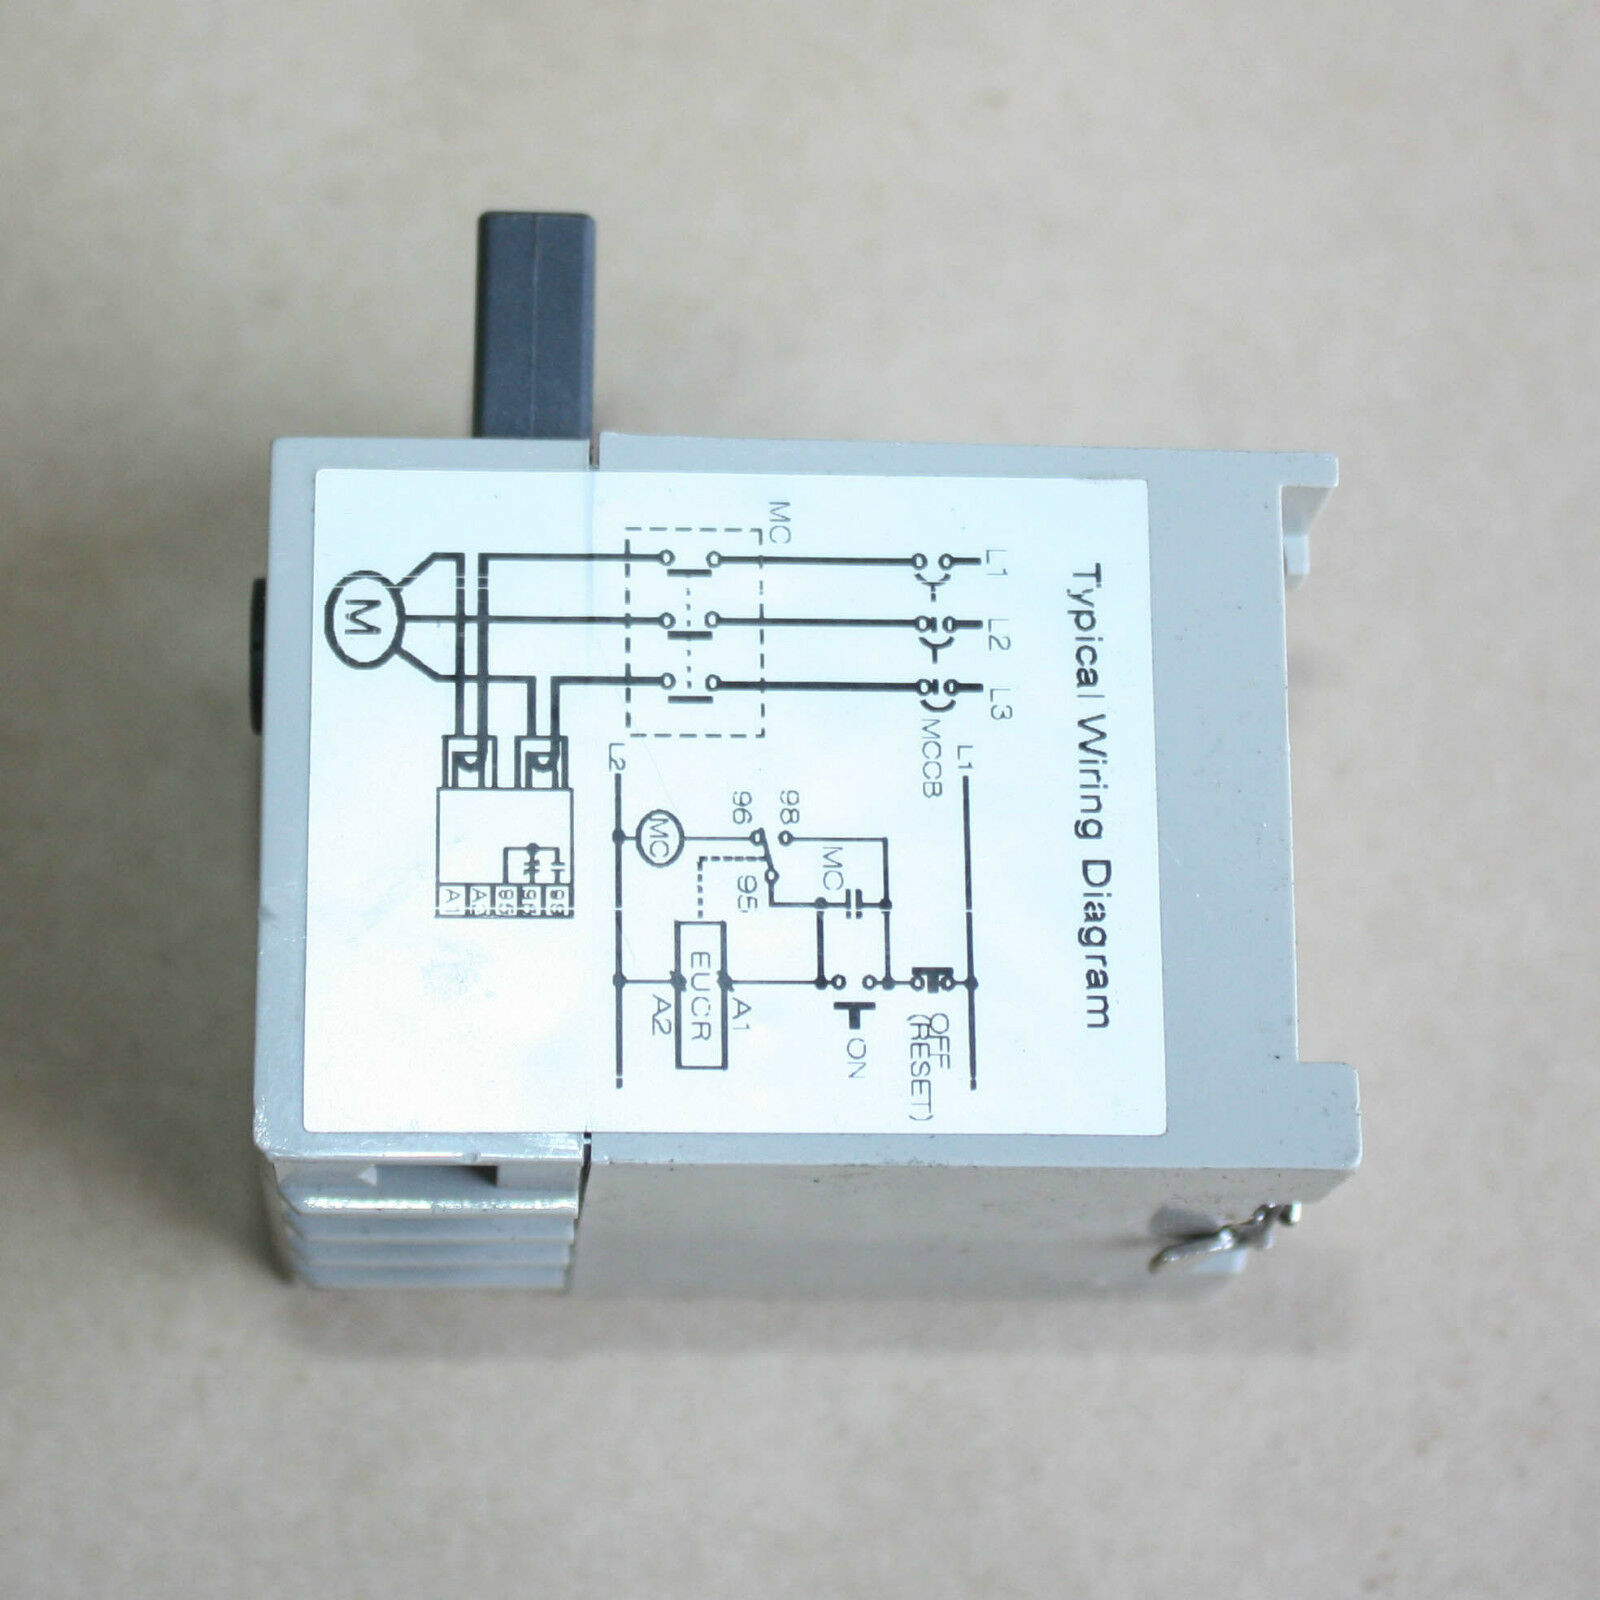 Schneider Electronic Undercurrent Protection Relay Eucr 05rm7dmq Under Current 05 R 220